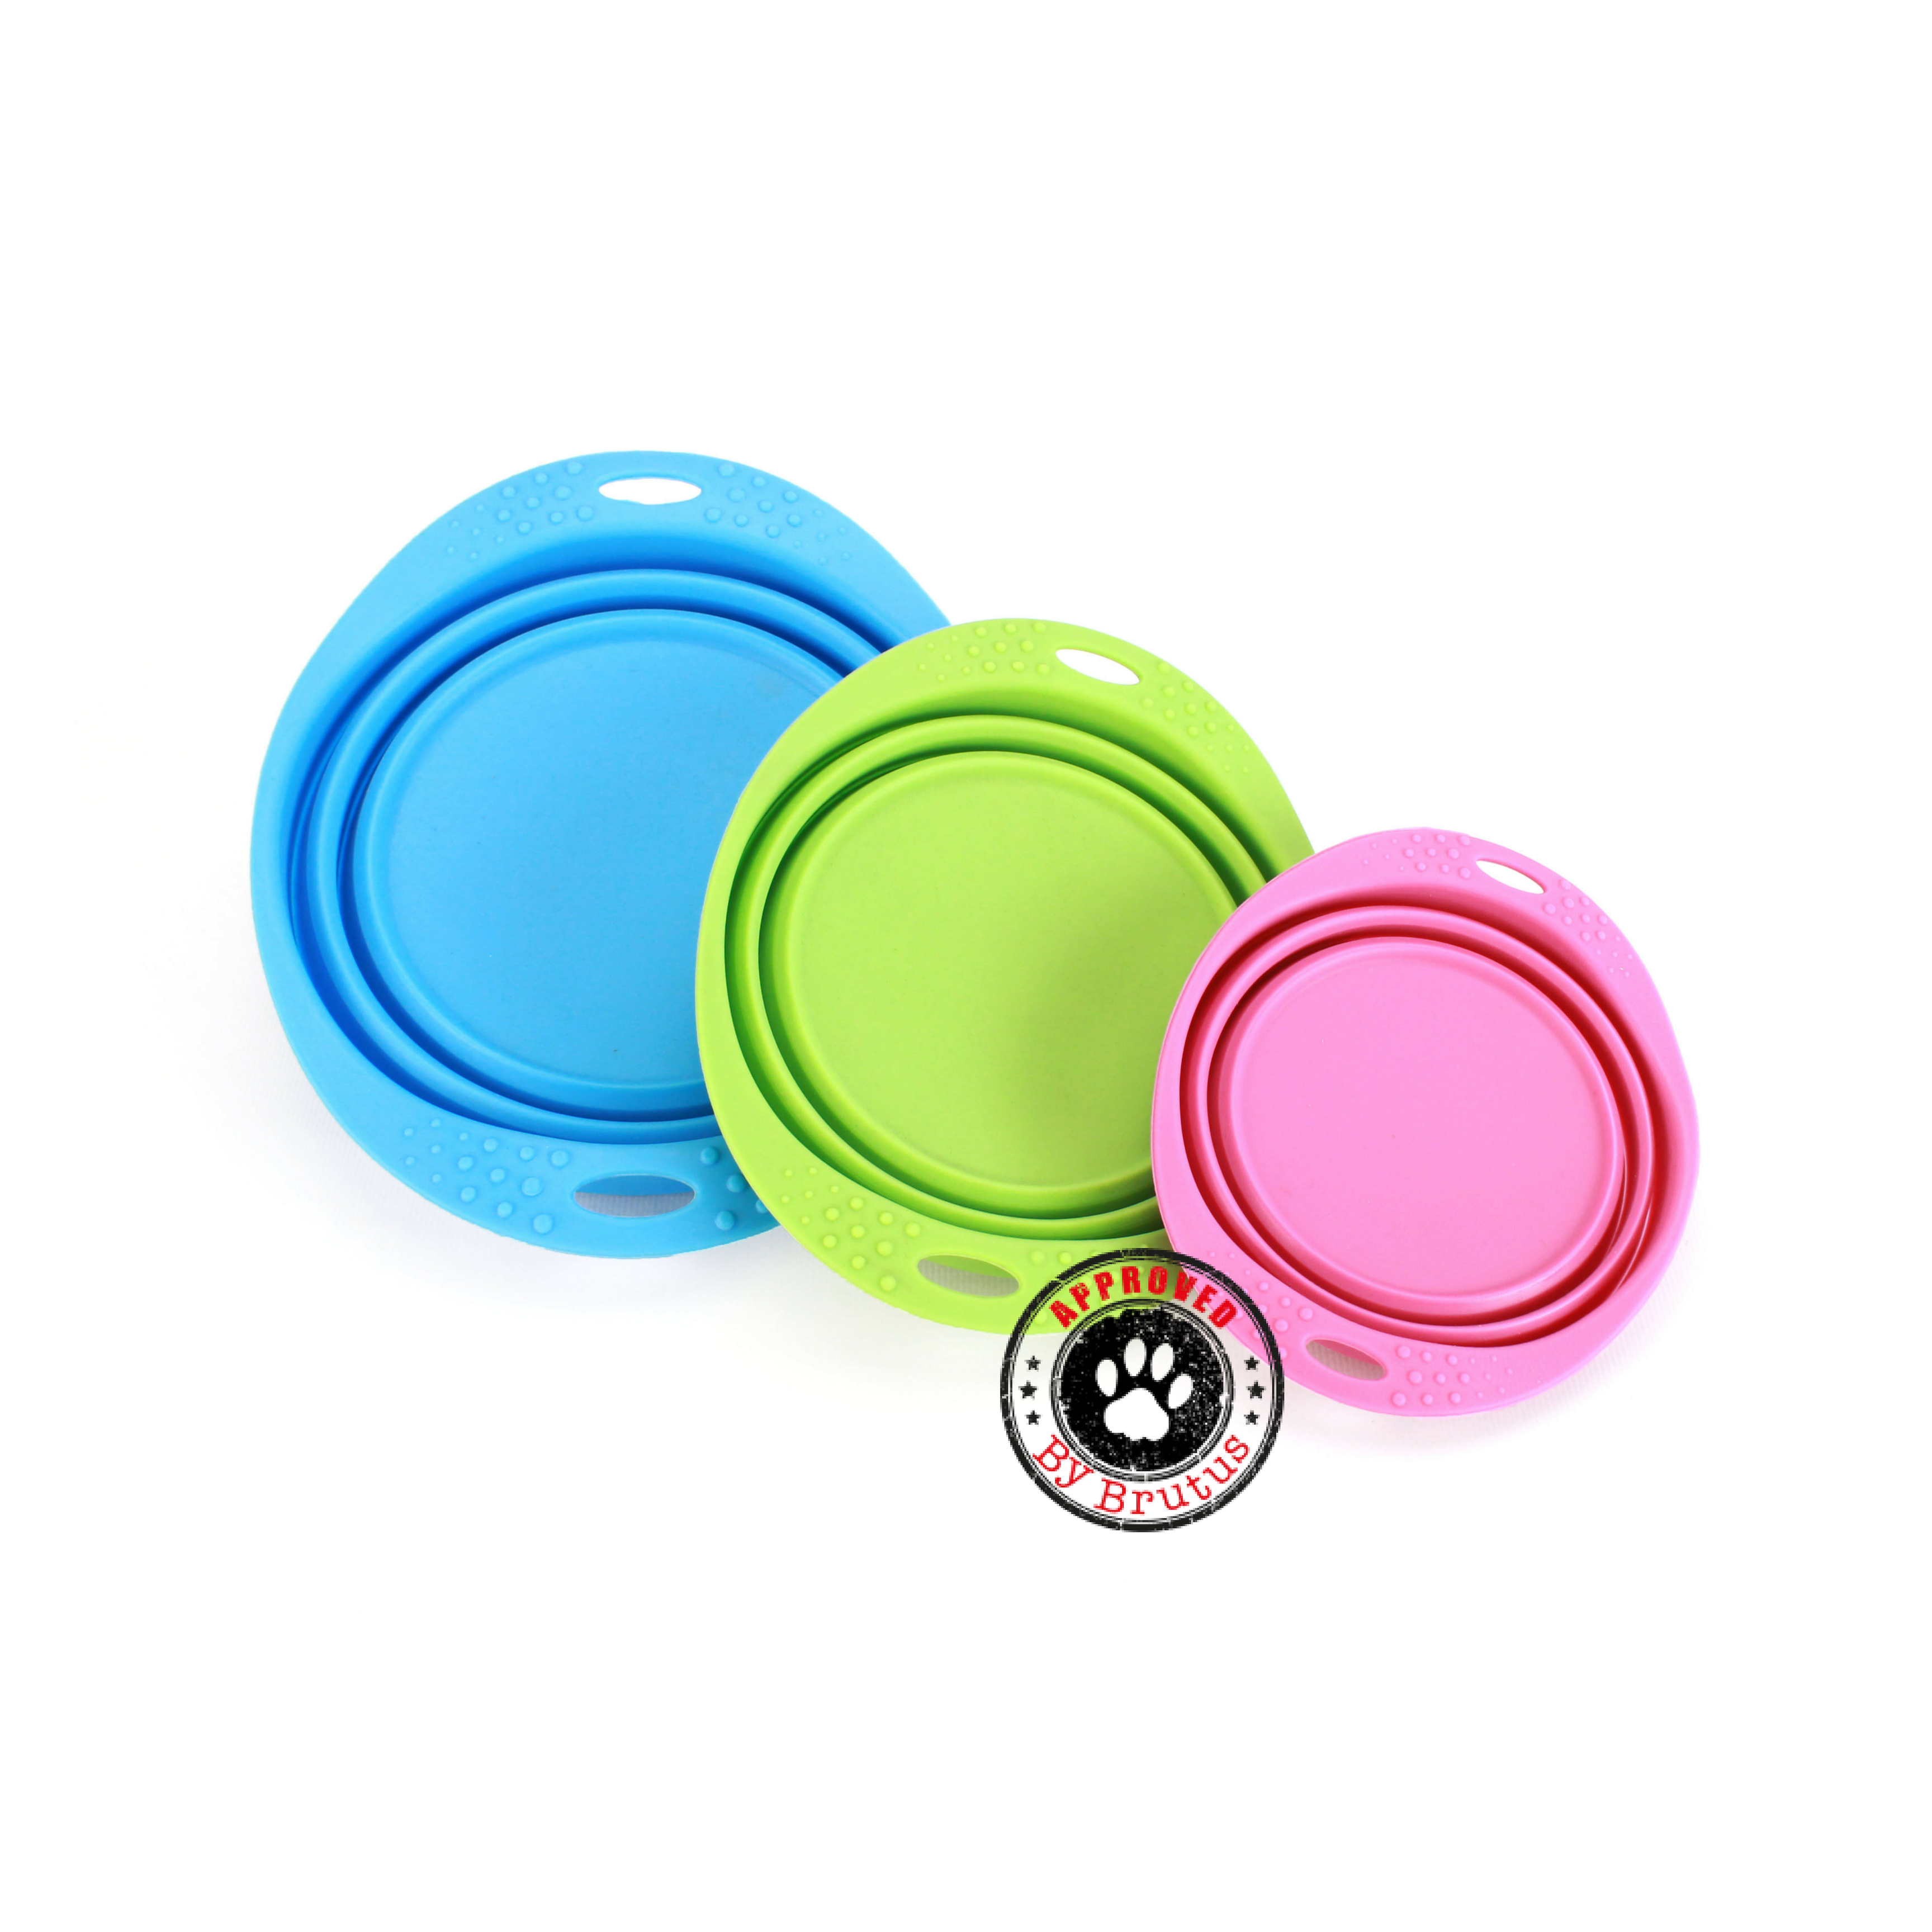 Green Collapsible Travel Bowl by Beco